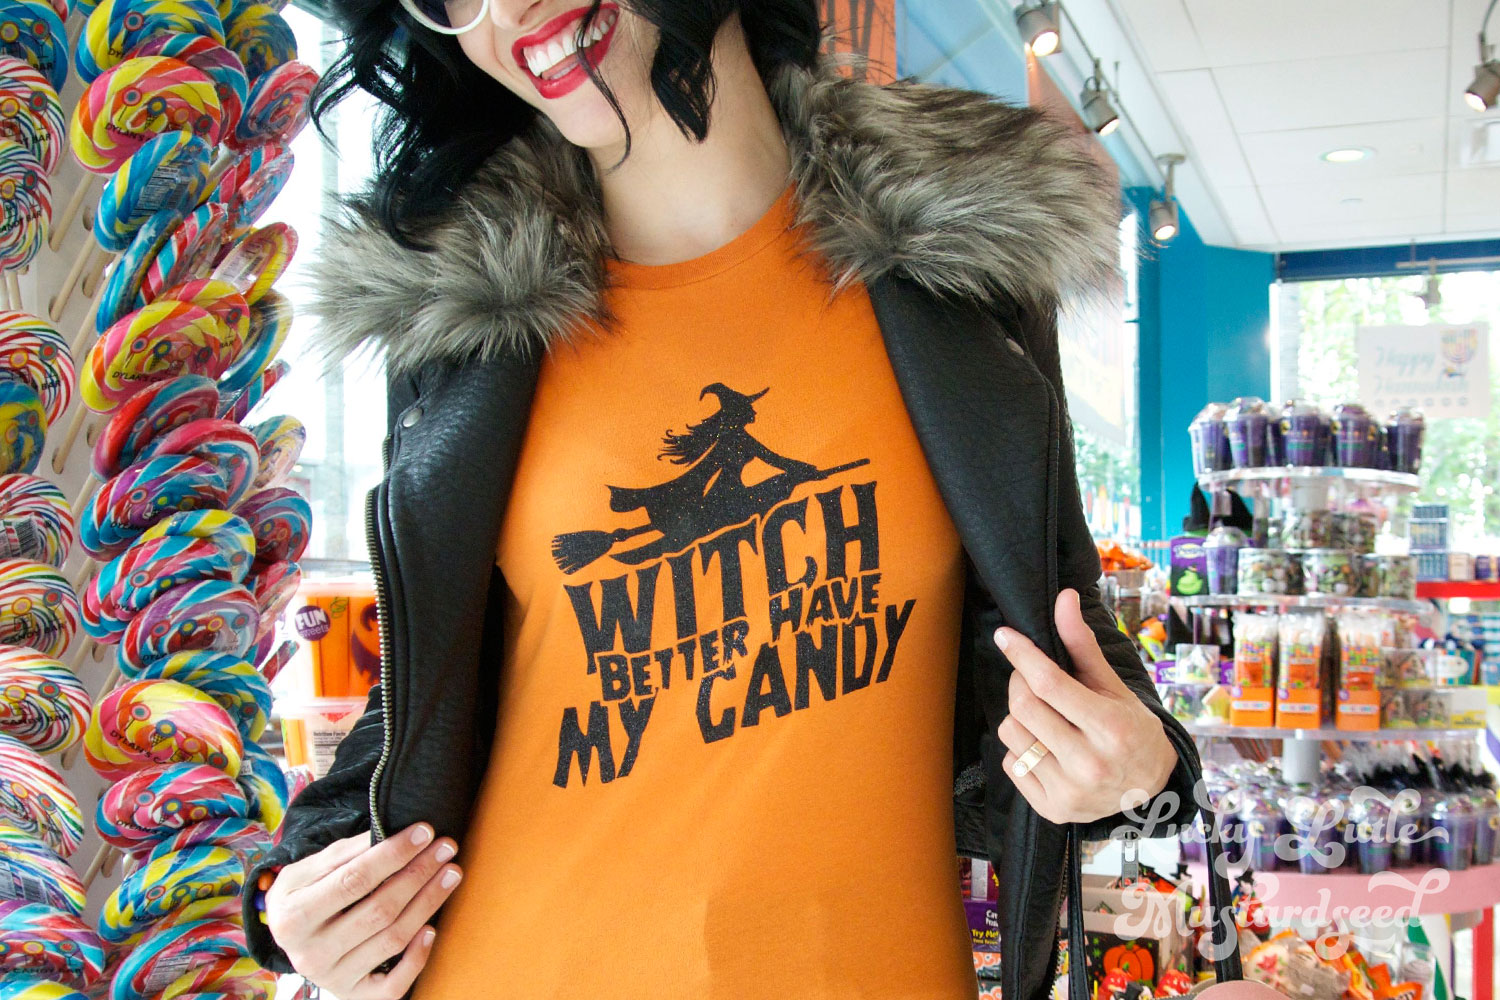 Jenna-Pilant-Lucky-Little-Mustardseed-Style-Crazed-Witch-Better-Have-My-Candy